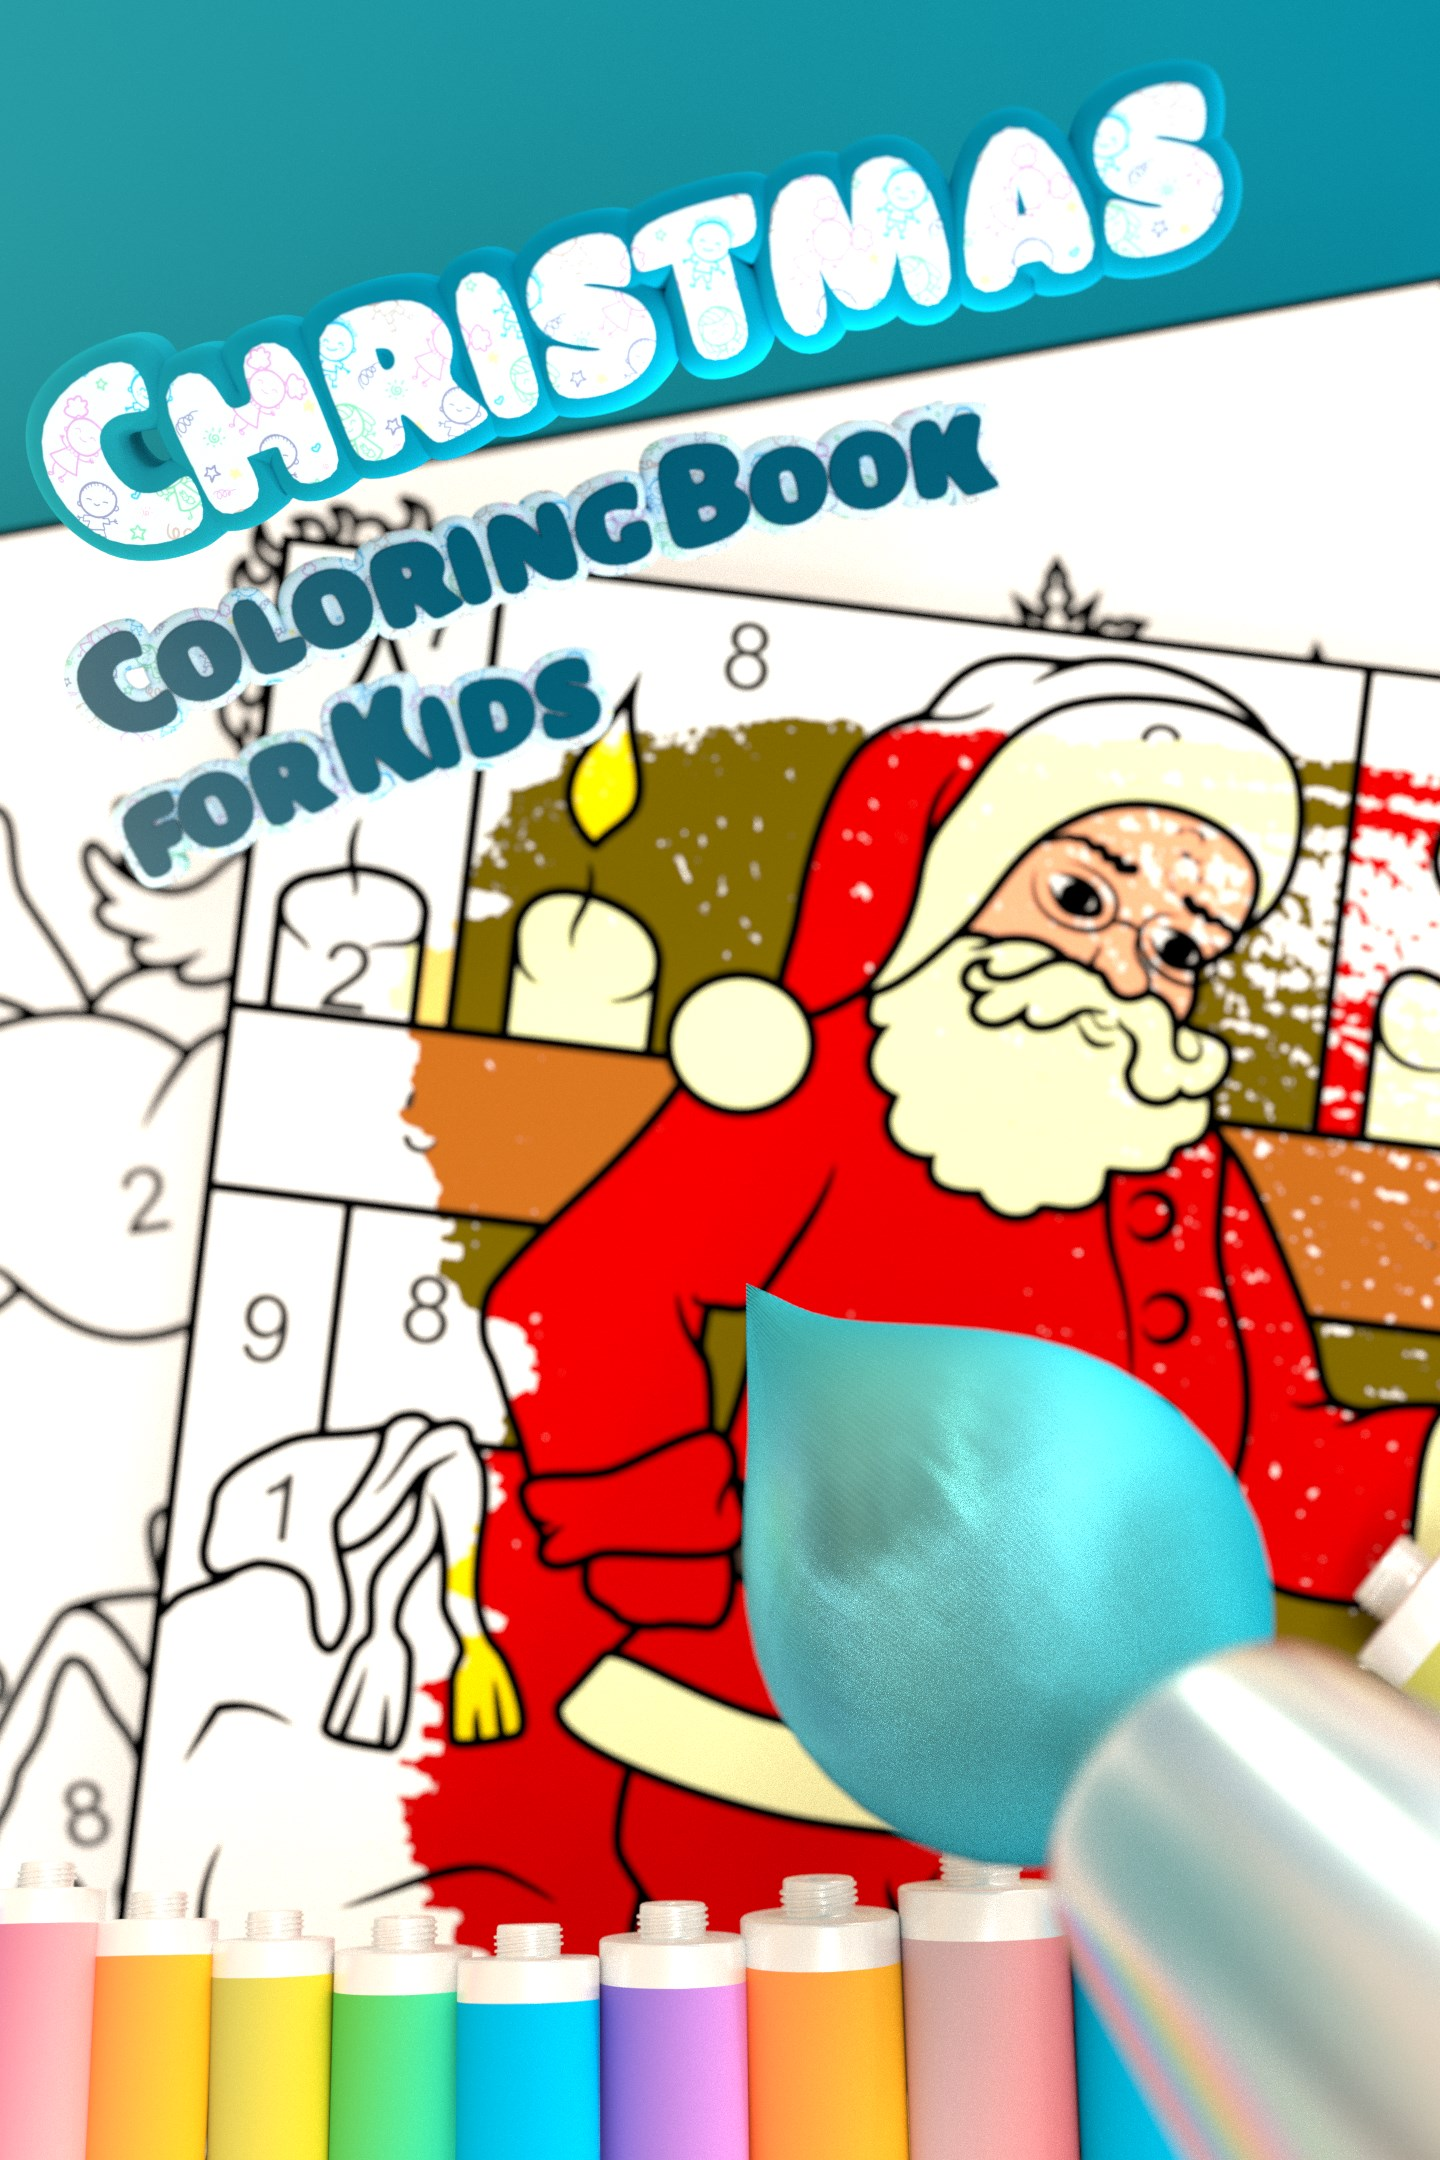 Get Christmas Coloring Book For Kids Microsoft Store